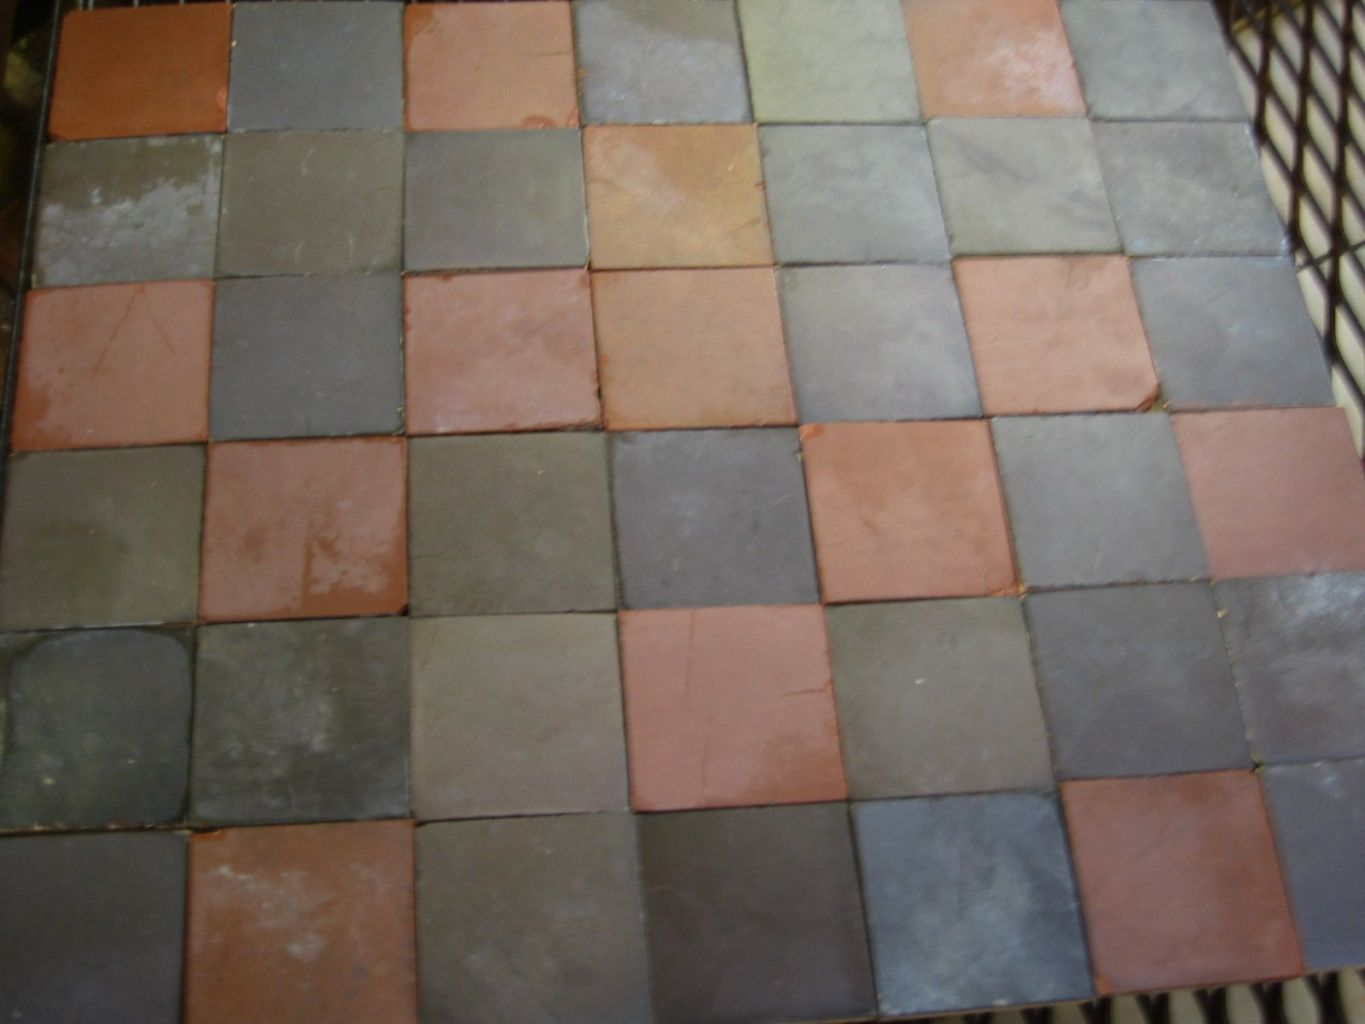 Ceramic tiles 14 x 14 cm patchwork of subdued wine inspired colours ceramic tiles job lot dailygadgetfo Image collections